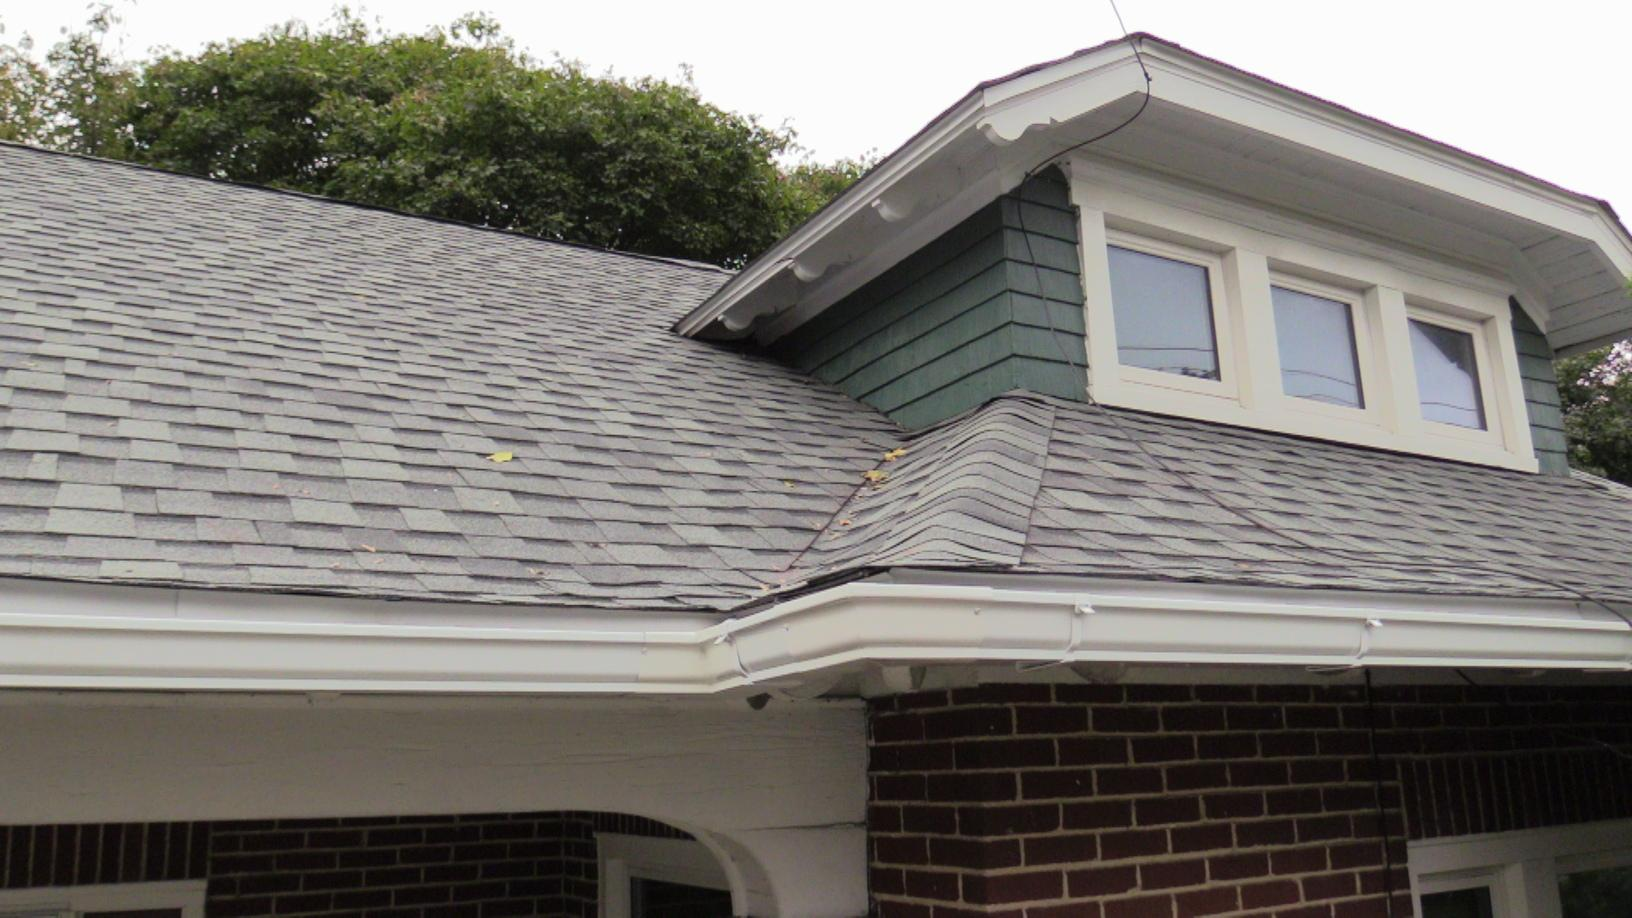 Check out the New Gutters and Roof Installed